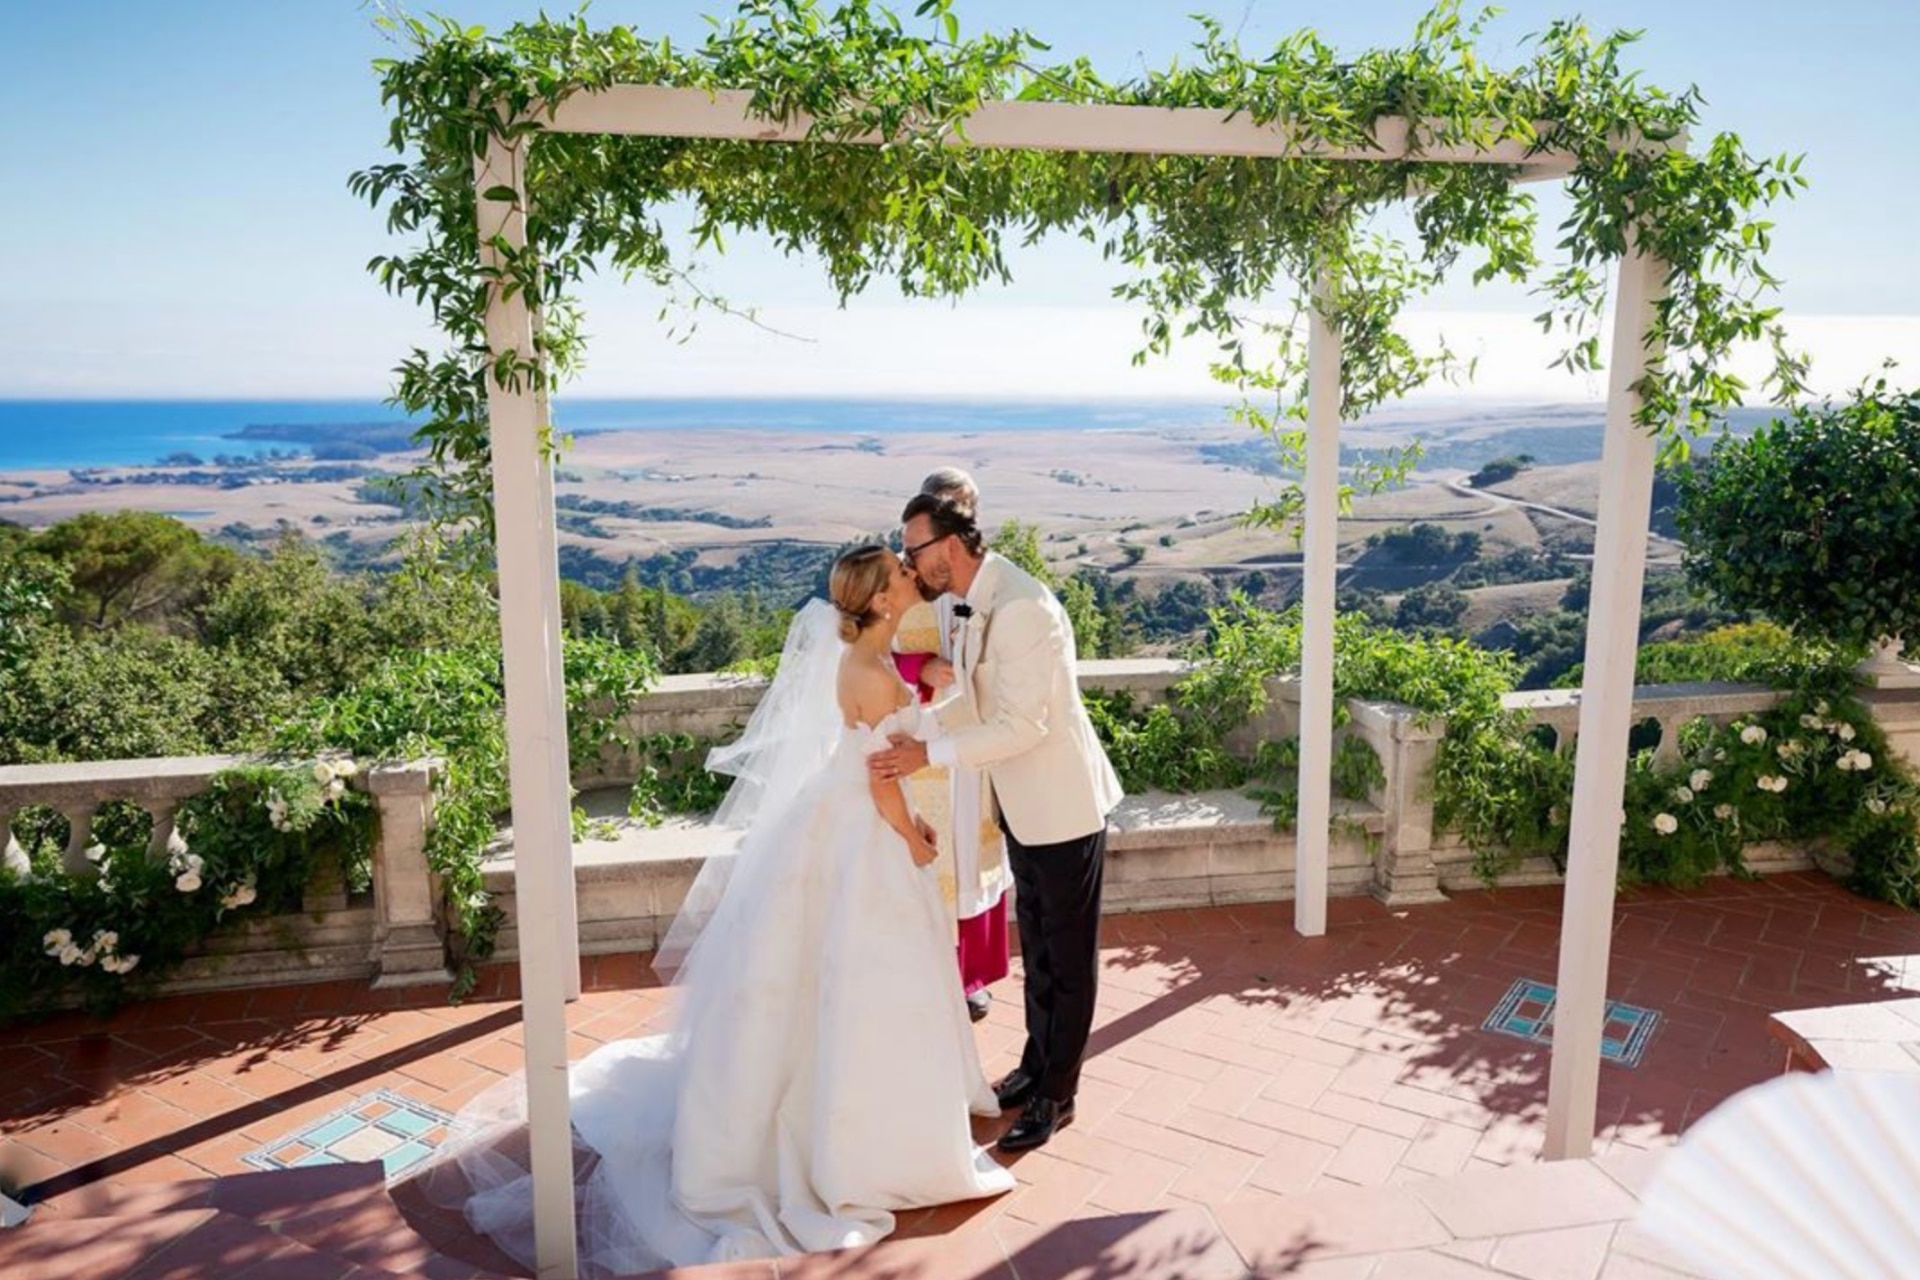 American heiress Amanda Hearst tied the knot in fairytale style at Hearst Castle